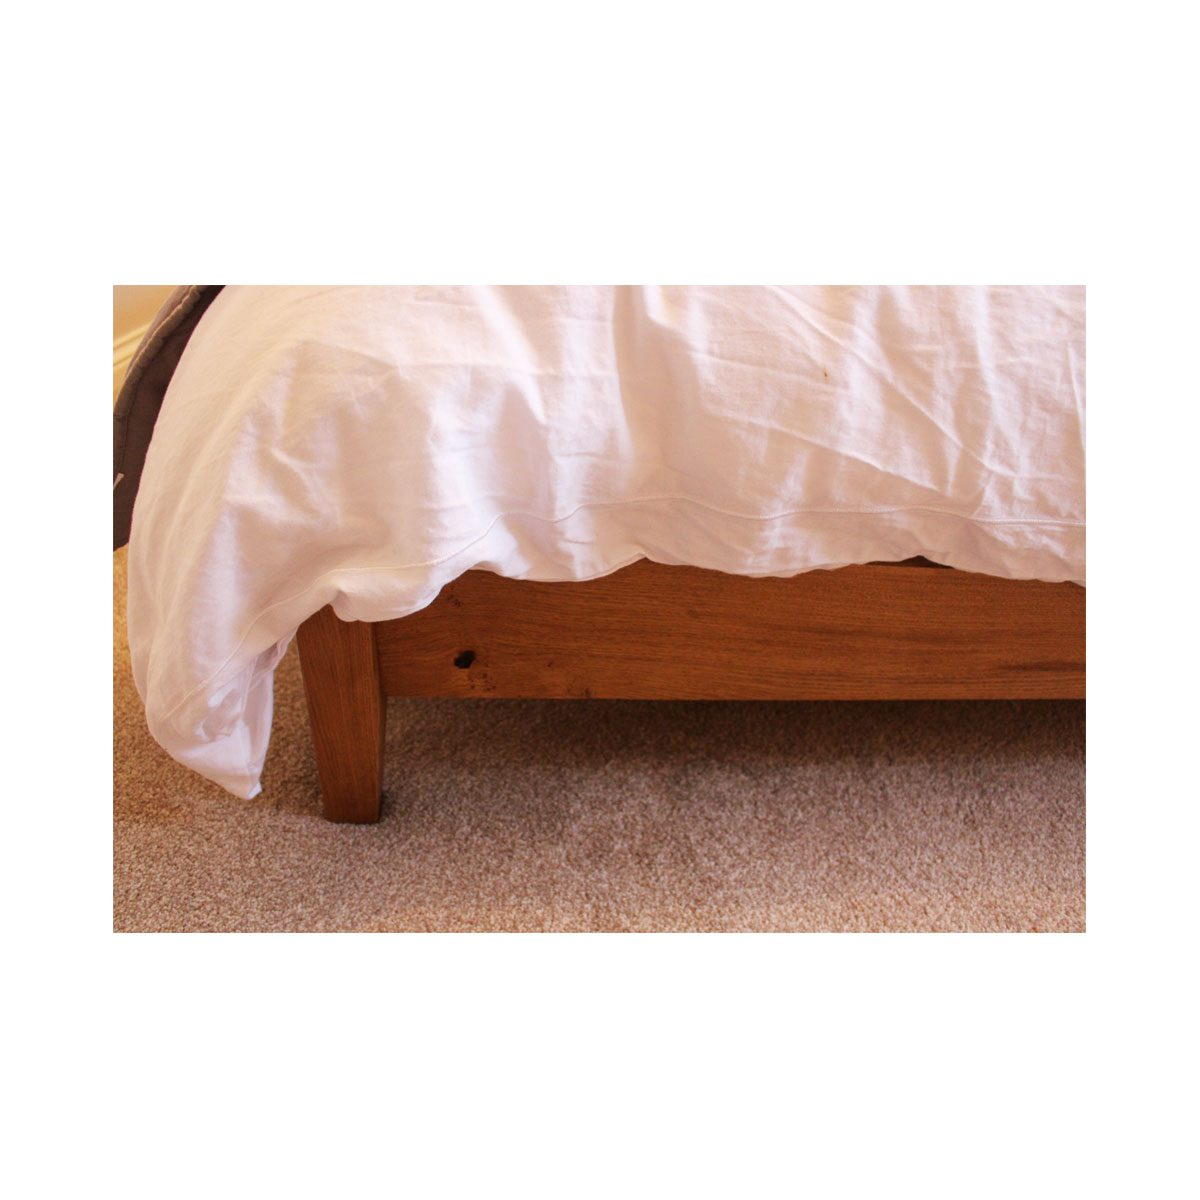 Bespoke Chiswick Bed Handcrafted in Suffolk